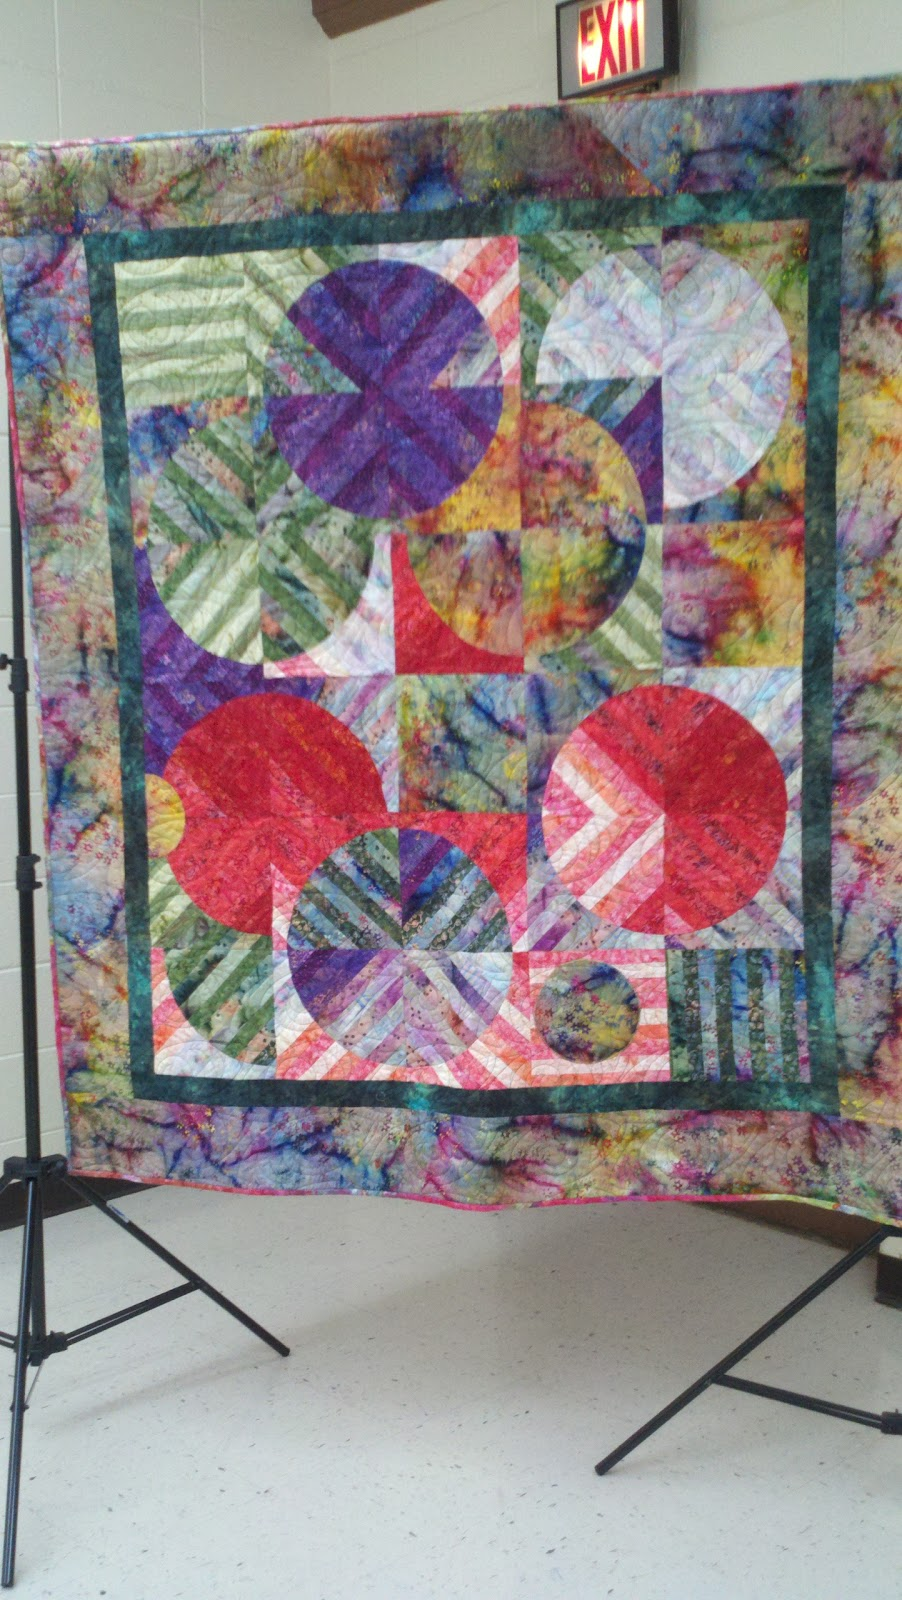 Dancing bear quilting studio dreaming of space for Space shuttle quilt